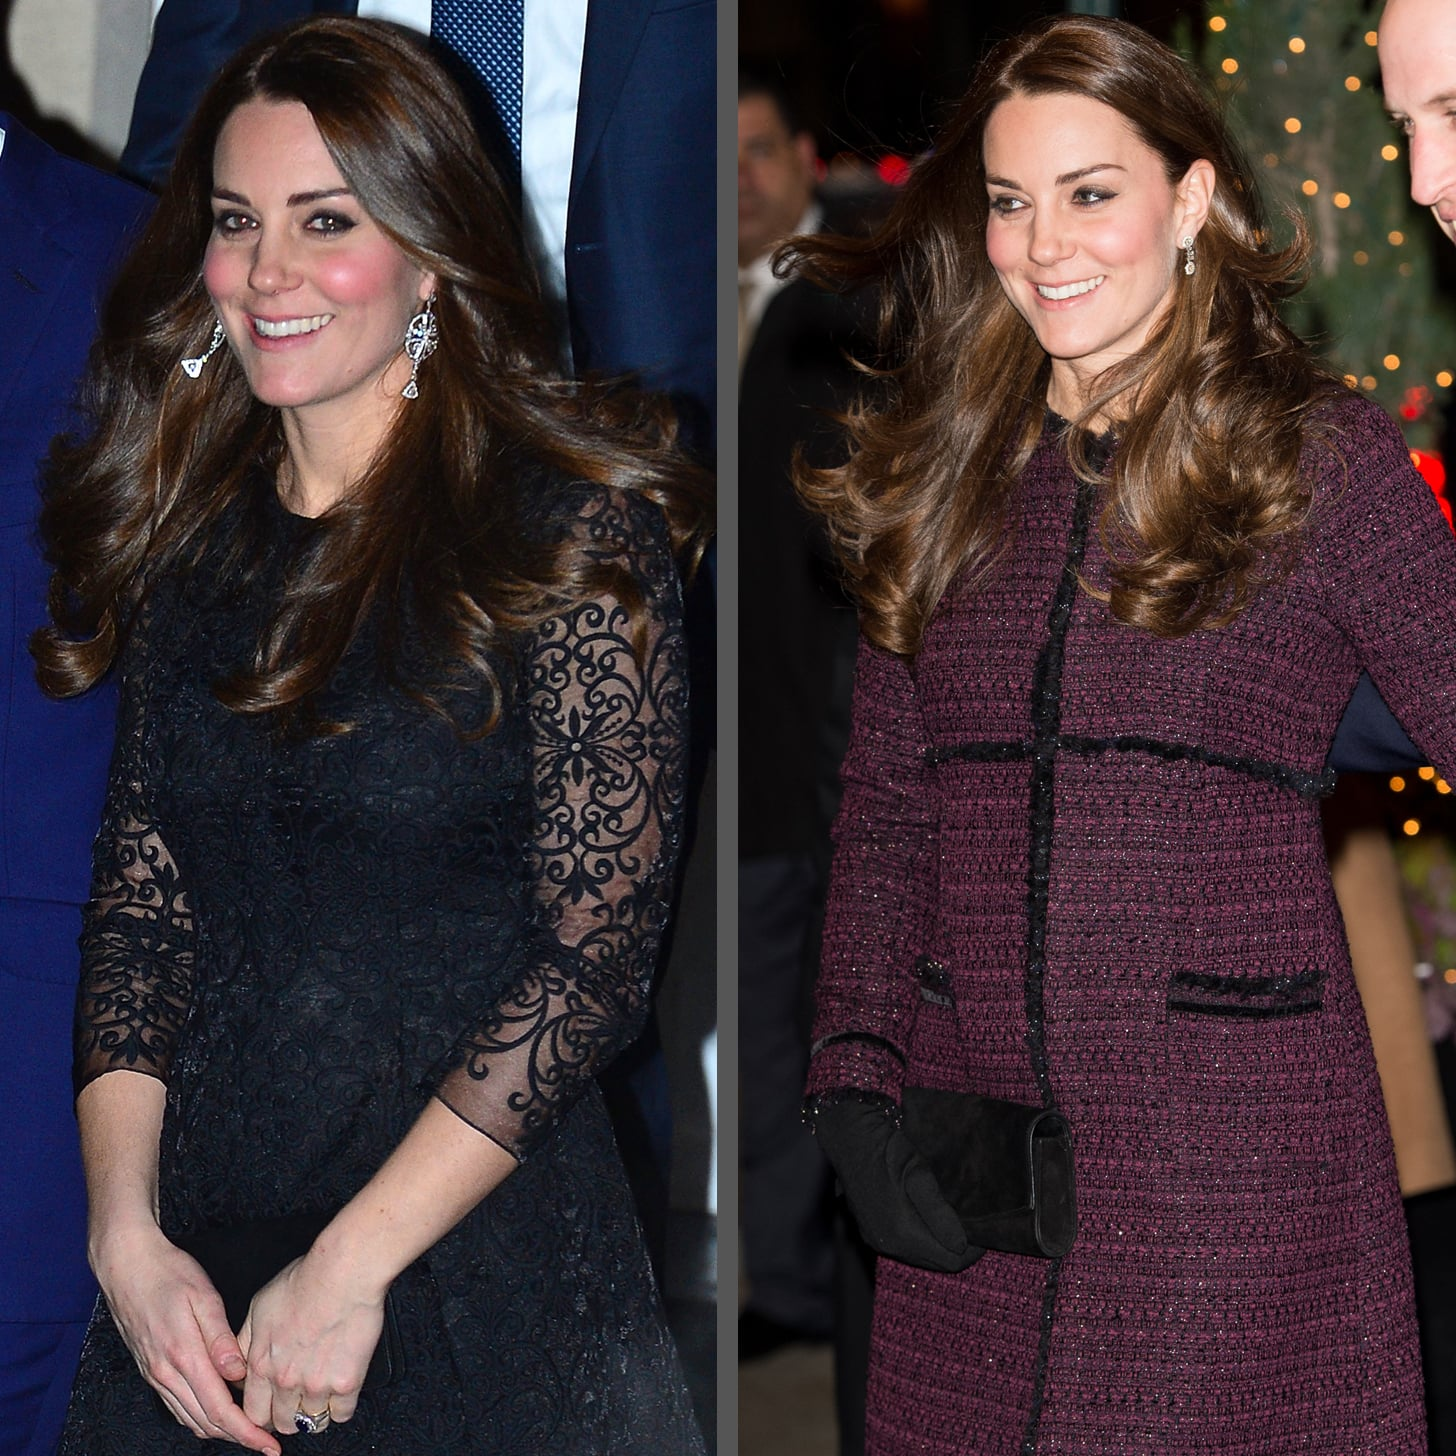 Kate middleton maternity style in nyc 2014 popsugar fashion ombrellifo Gallery